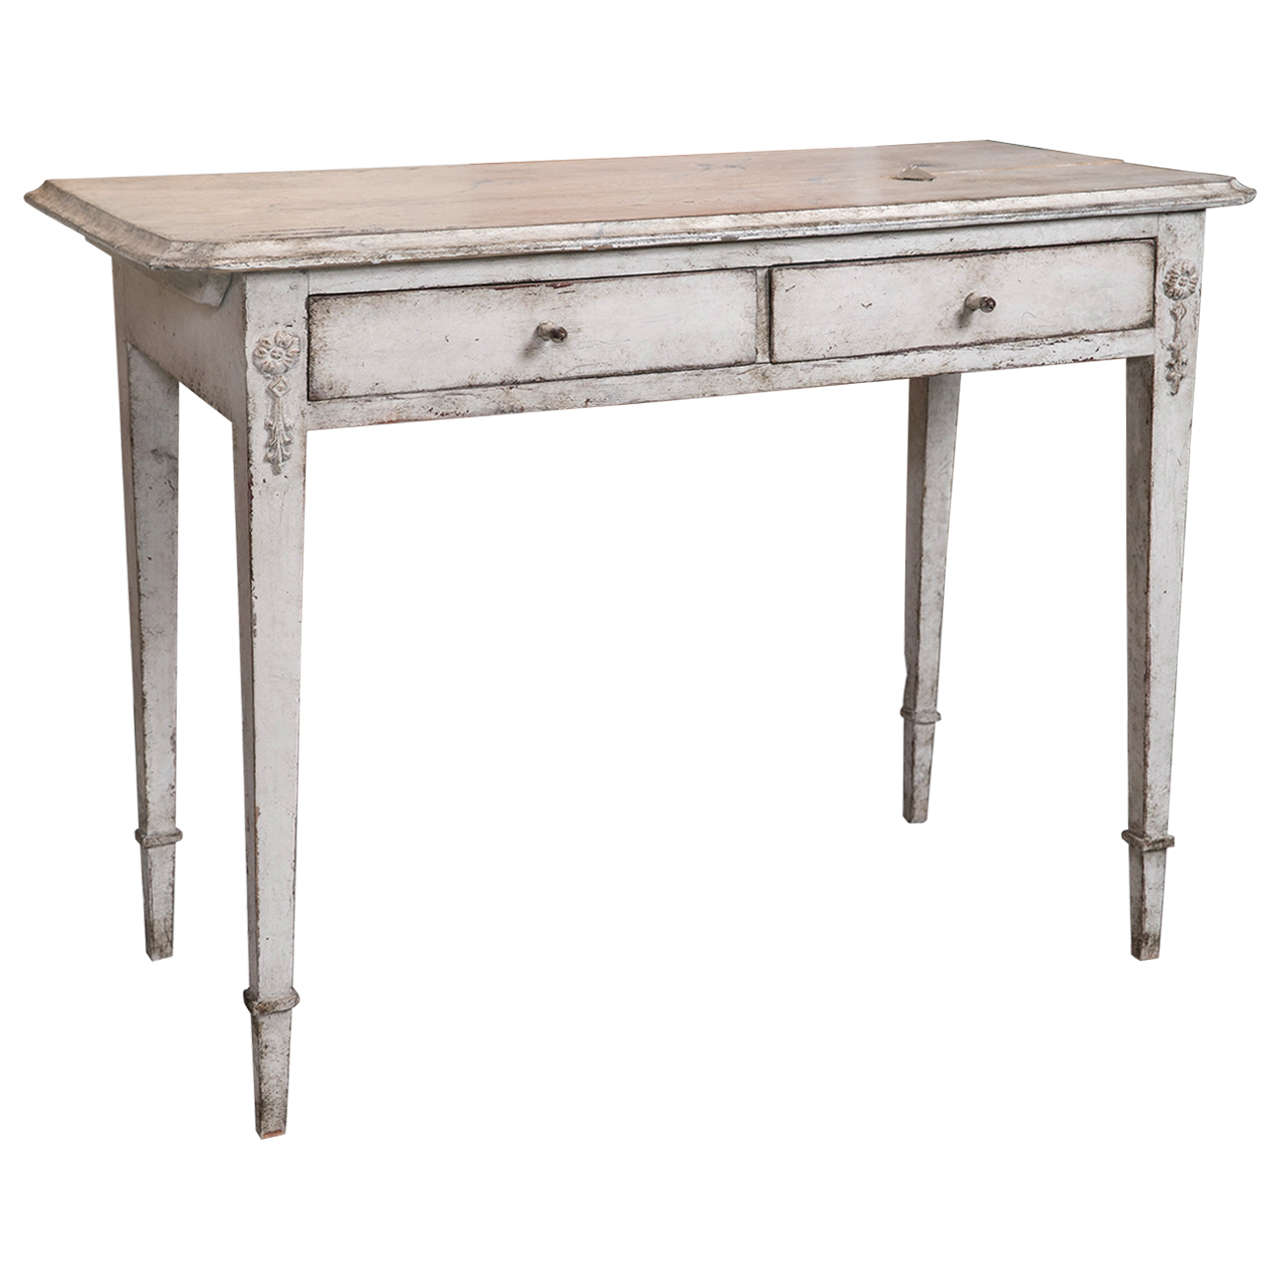 18th Century Swedish Desk At 1stdibs